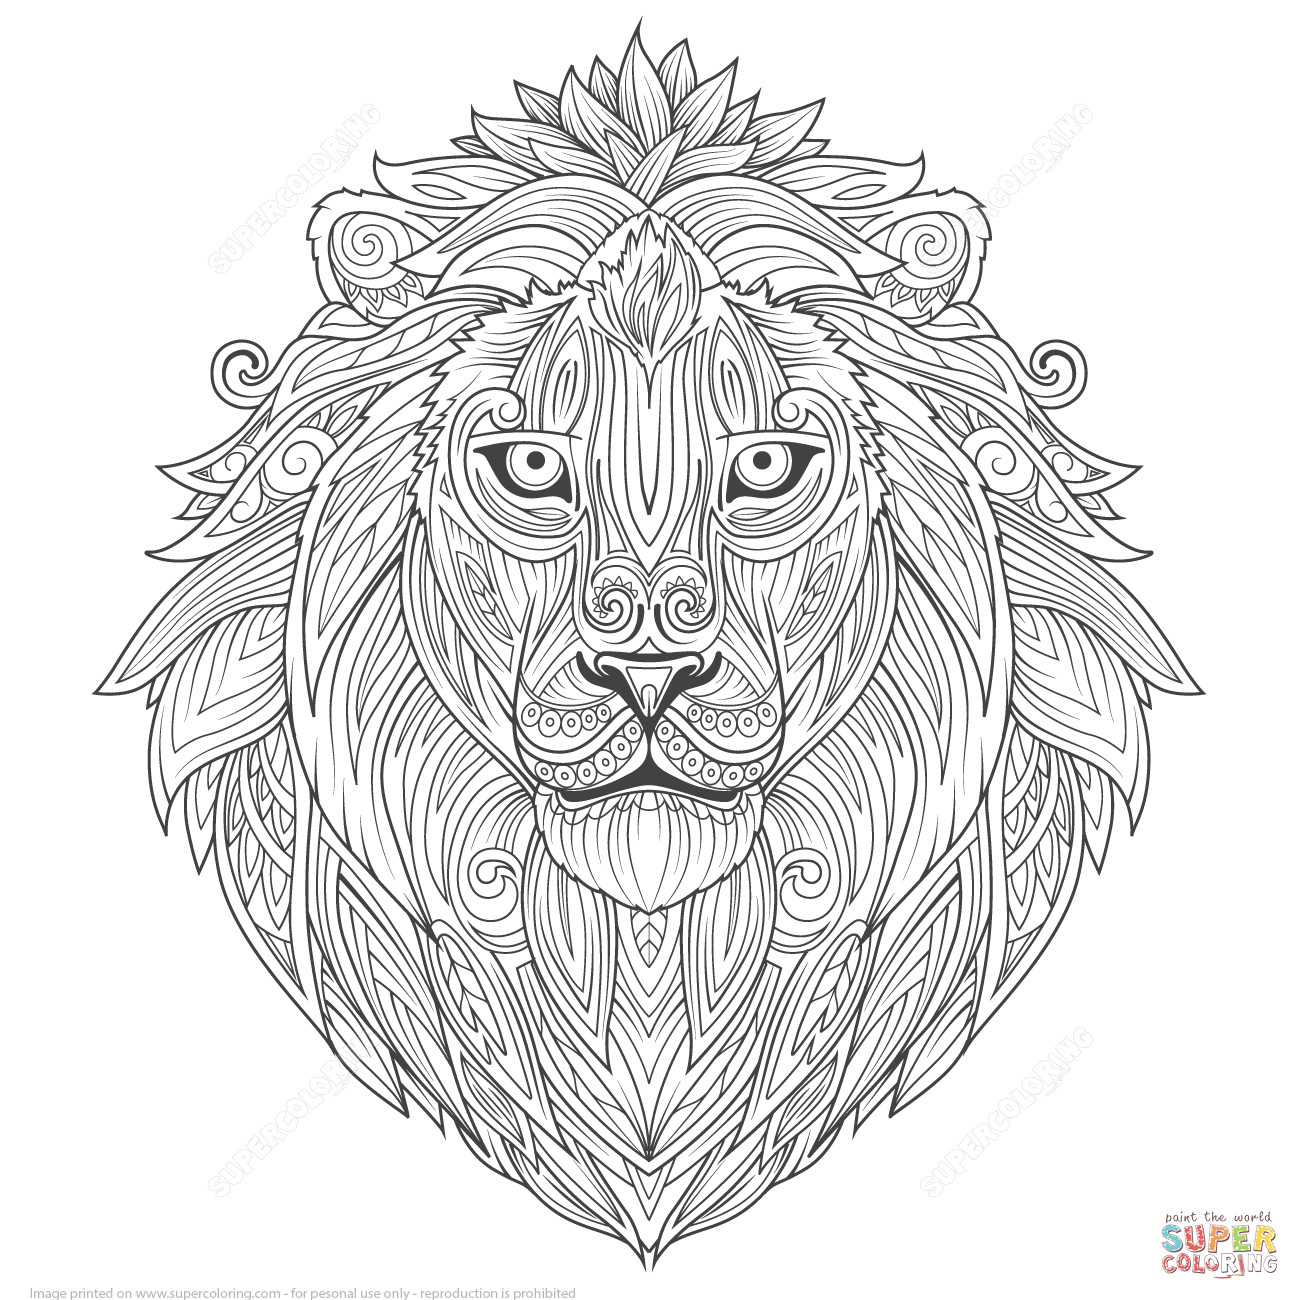 Best ideas about Zentangle Coloring Pages For Kids . Save or Pin Printable Zentangle Coloring Pages Coloring Home Now.